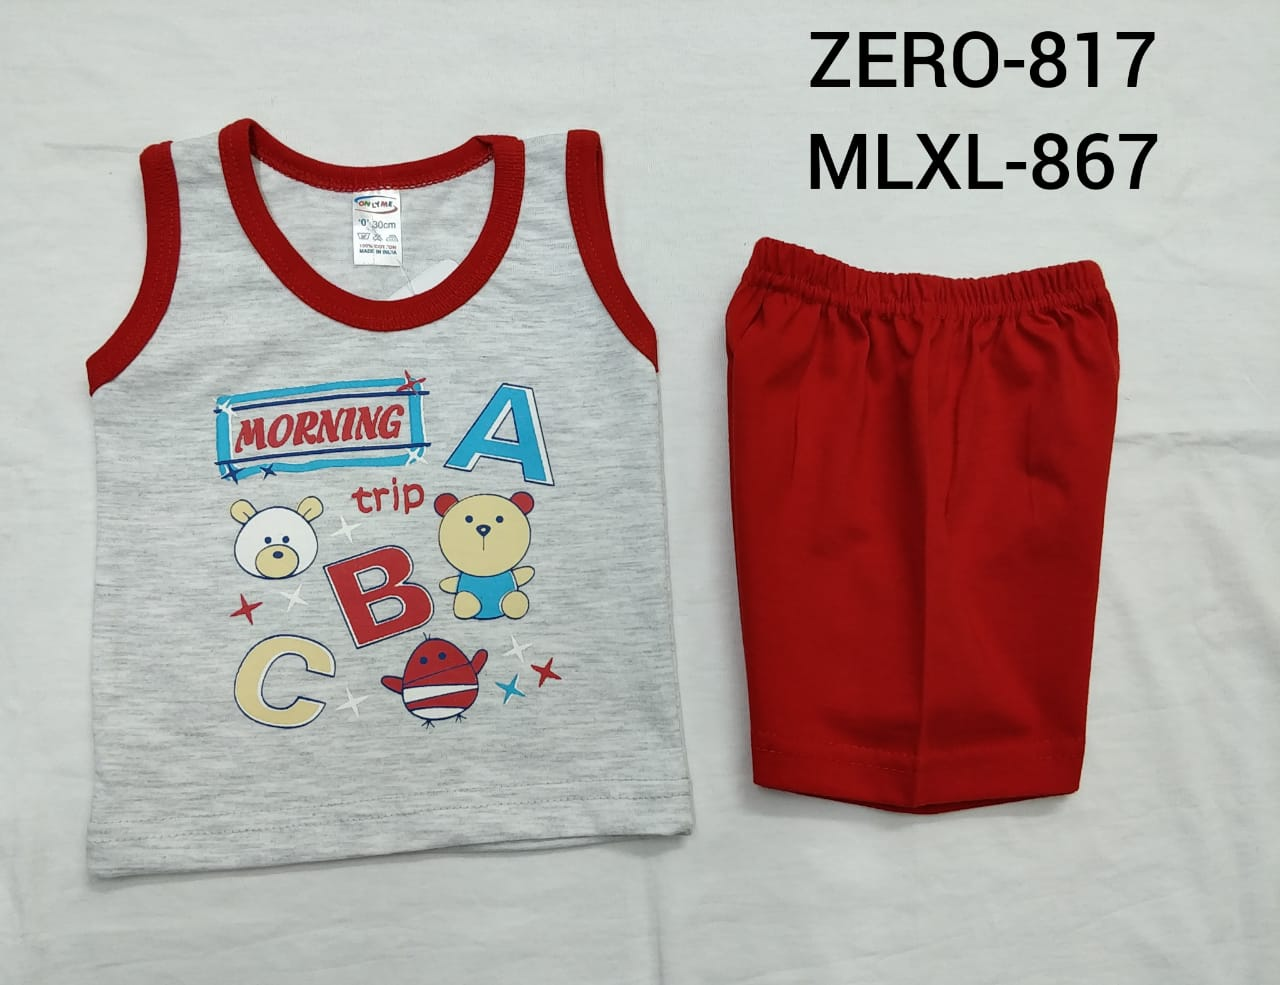 Only Me Boys Short Sleeve Vests And Shorts Set | Stunning Outfit For Your Cute Lil Prince | Pack Of 3 Sets (0(RPP-140))